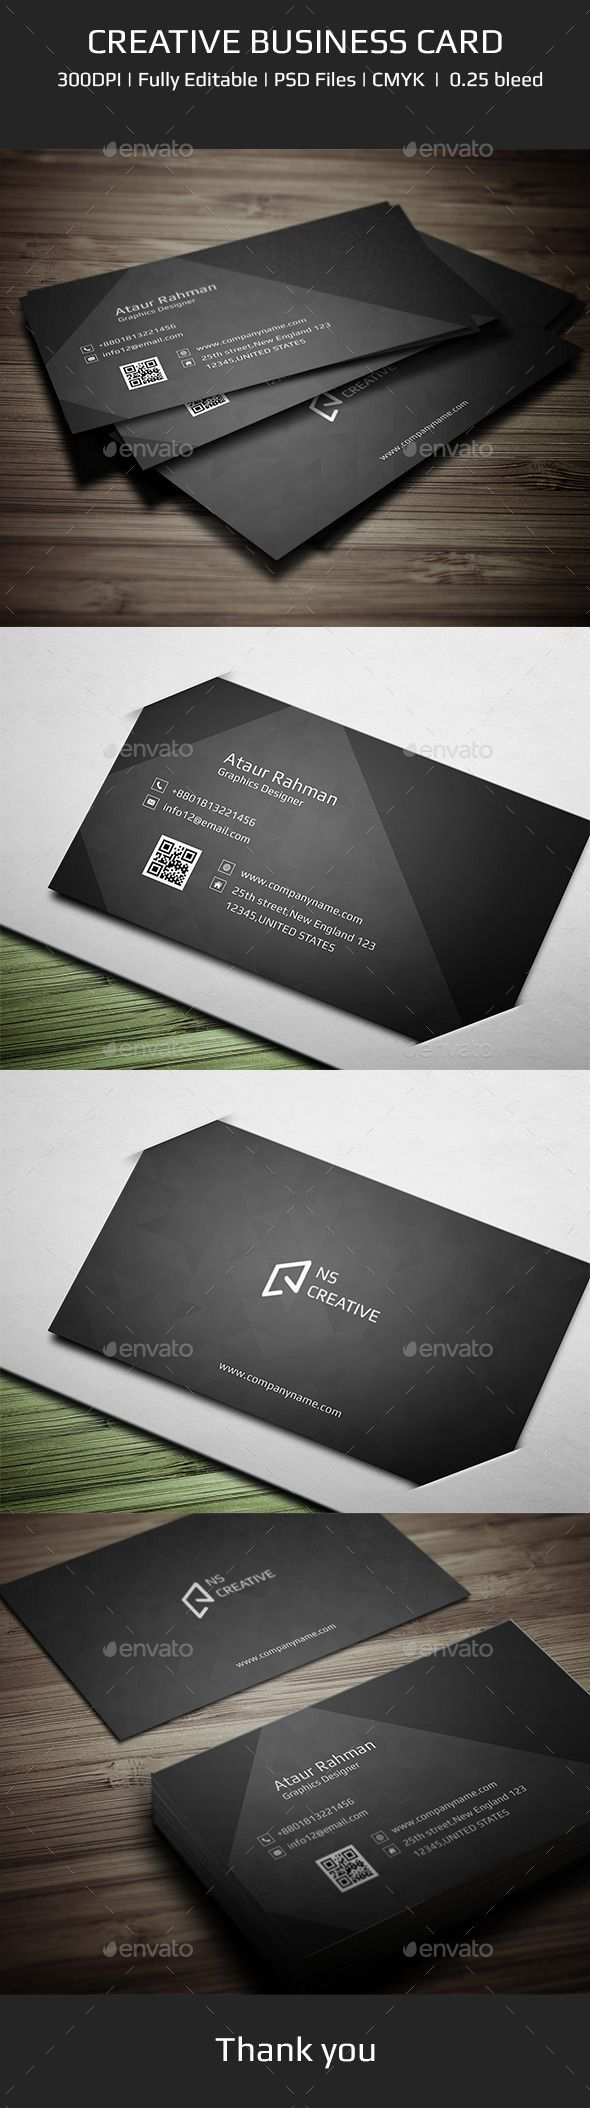 48 Best Logos Images On Pinterest Business Cards Logos And